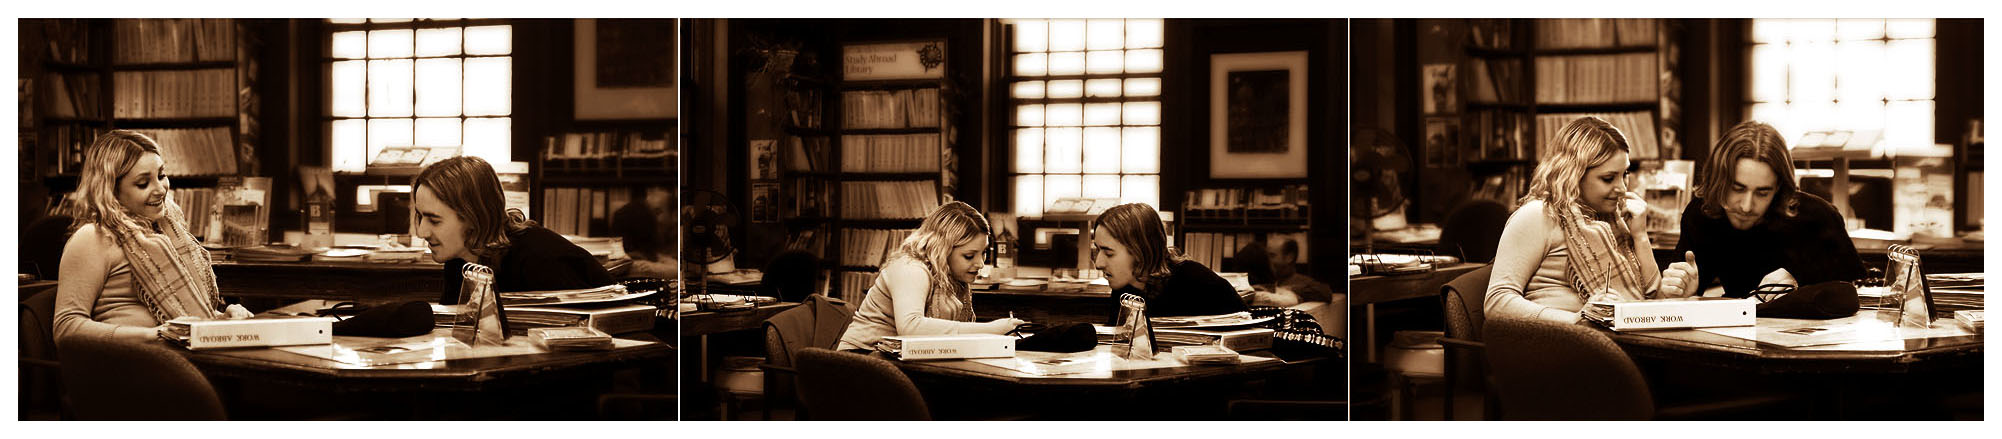 Afternoon talk -- in sepia